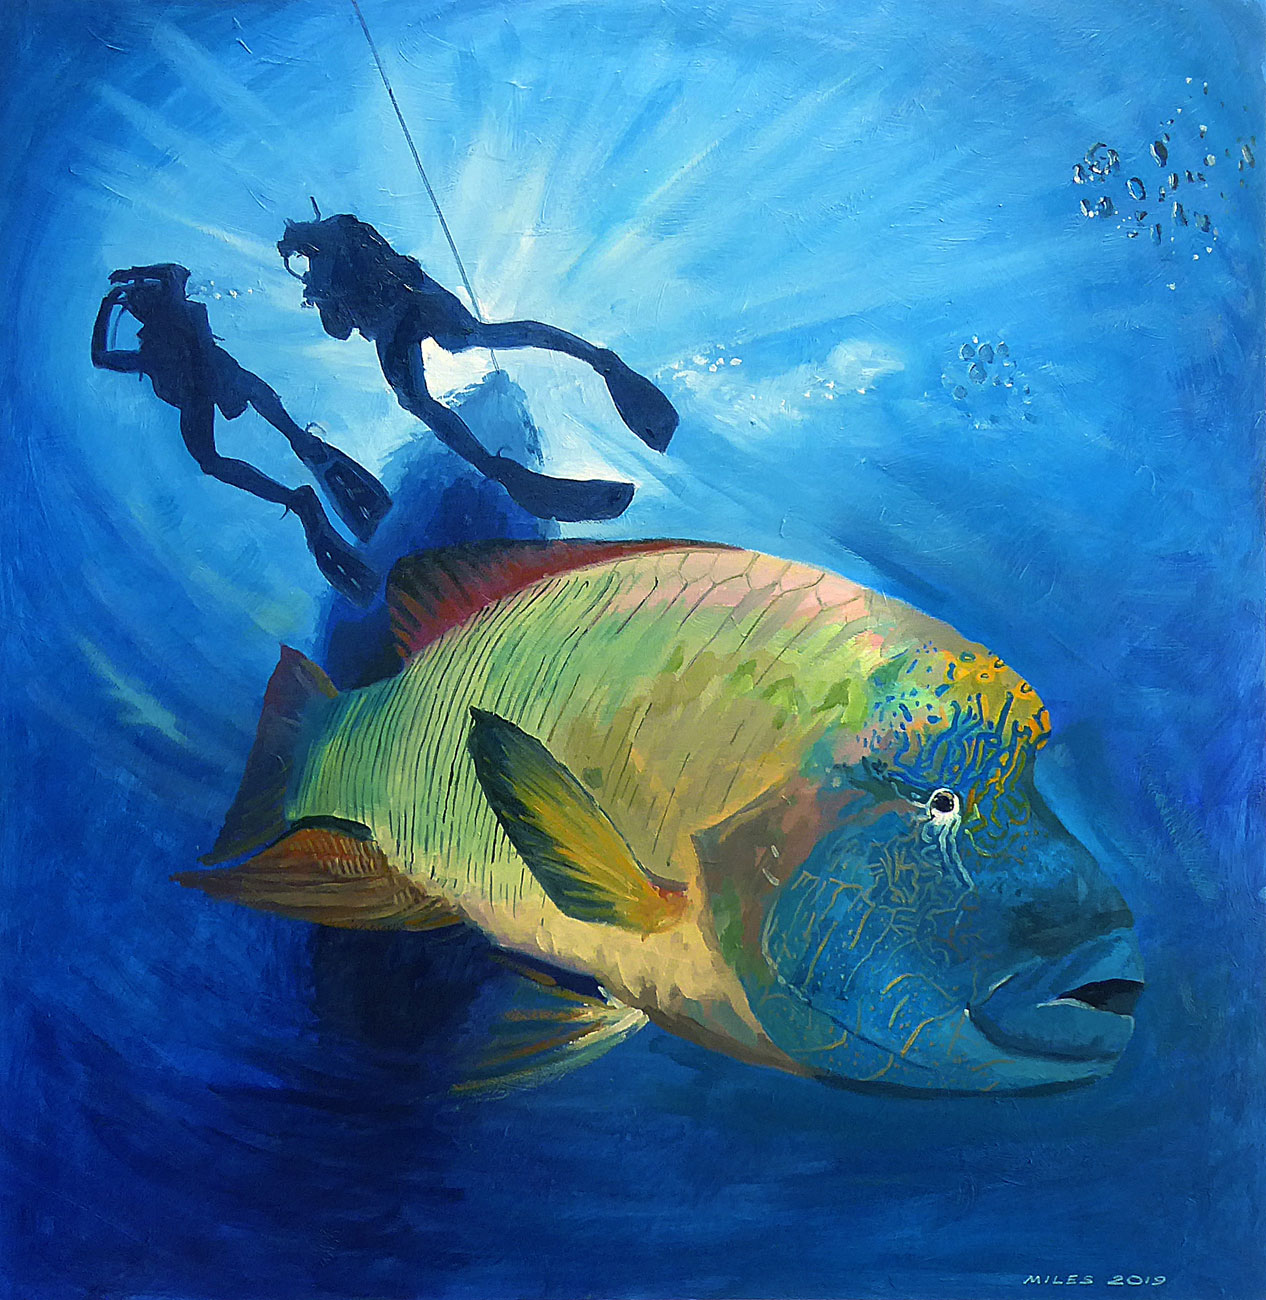 Underwater-Painting-Gerry-Miles-Safety-stop-with-Napoleon-Fish.jpg